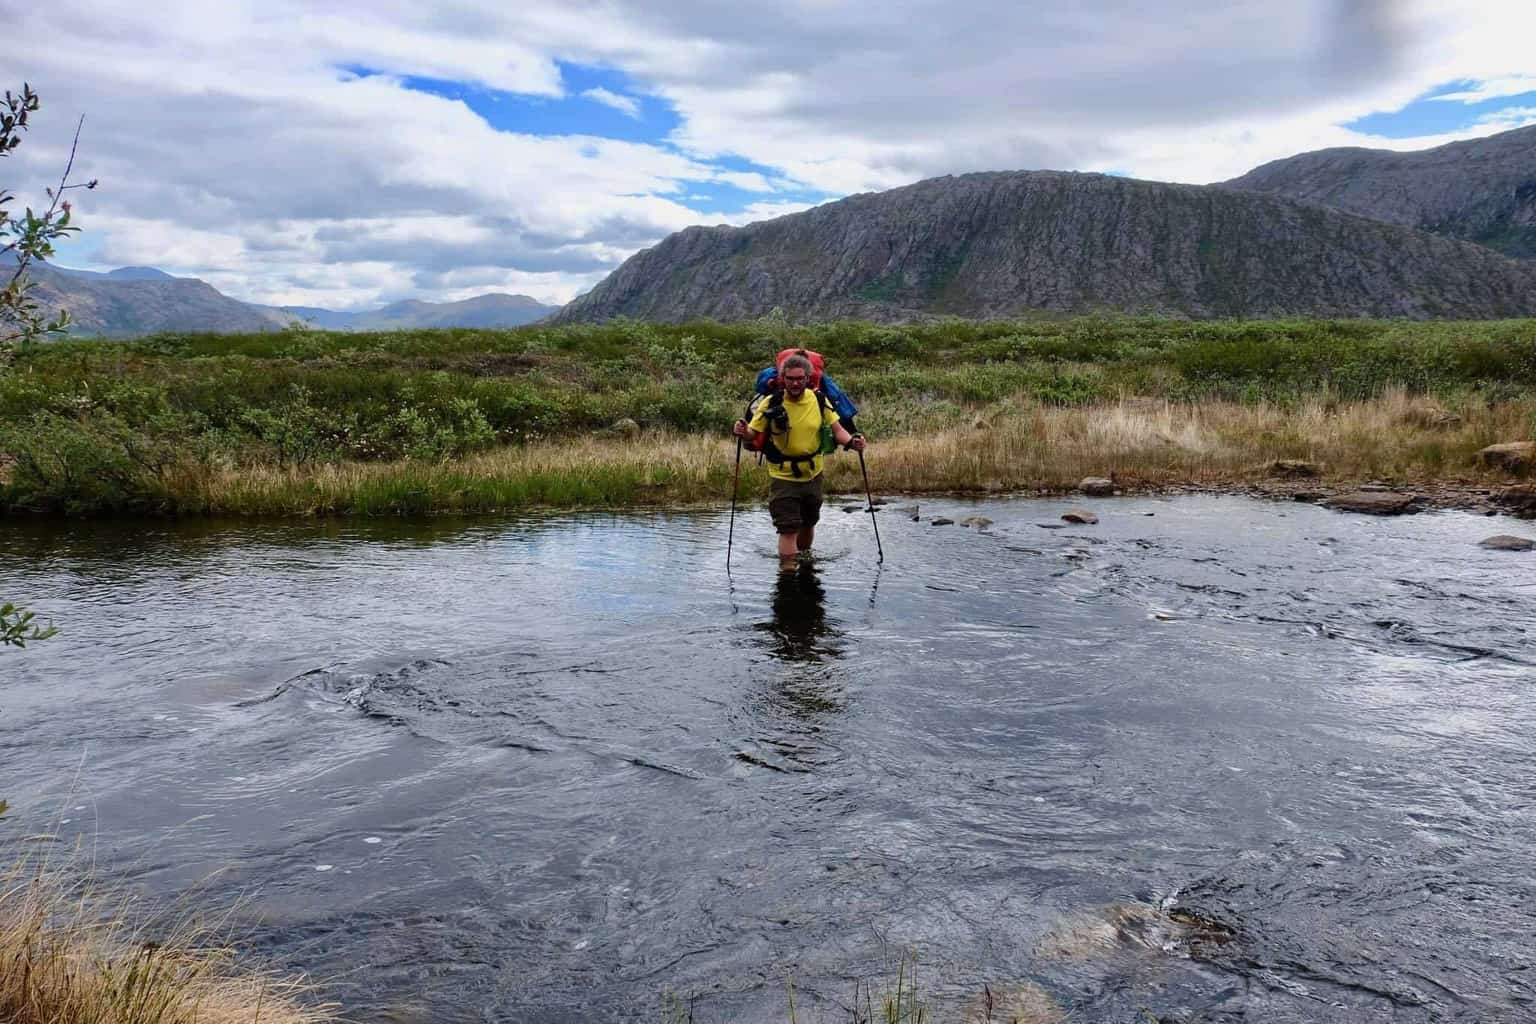 Arctic Circle Trail greenland river crossing